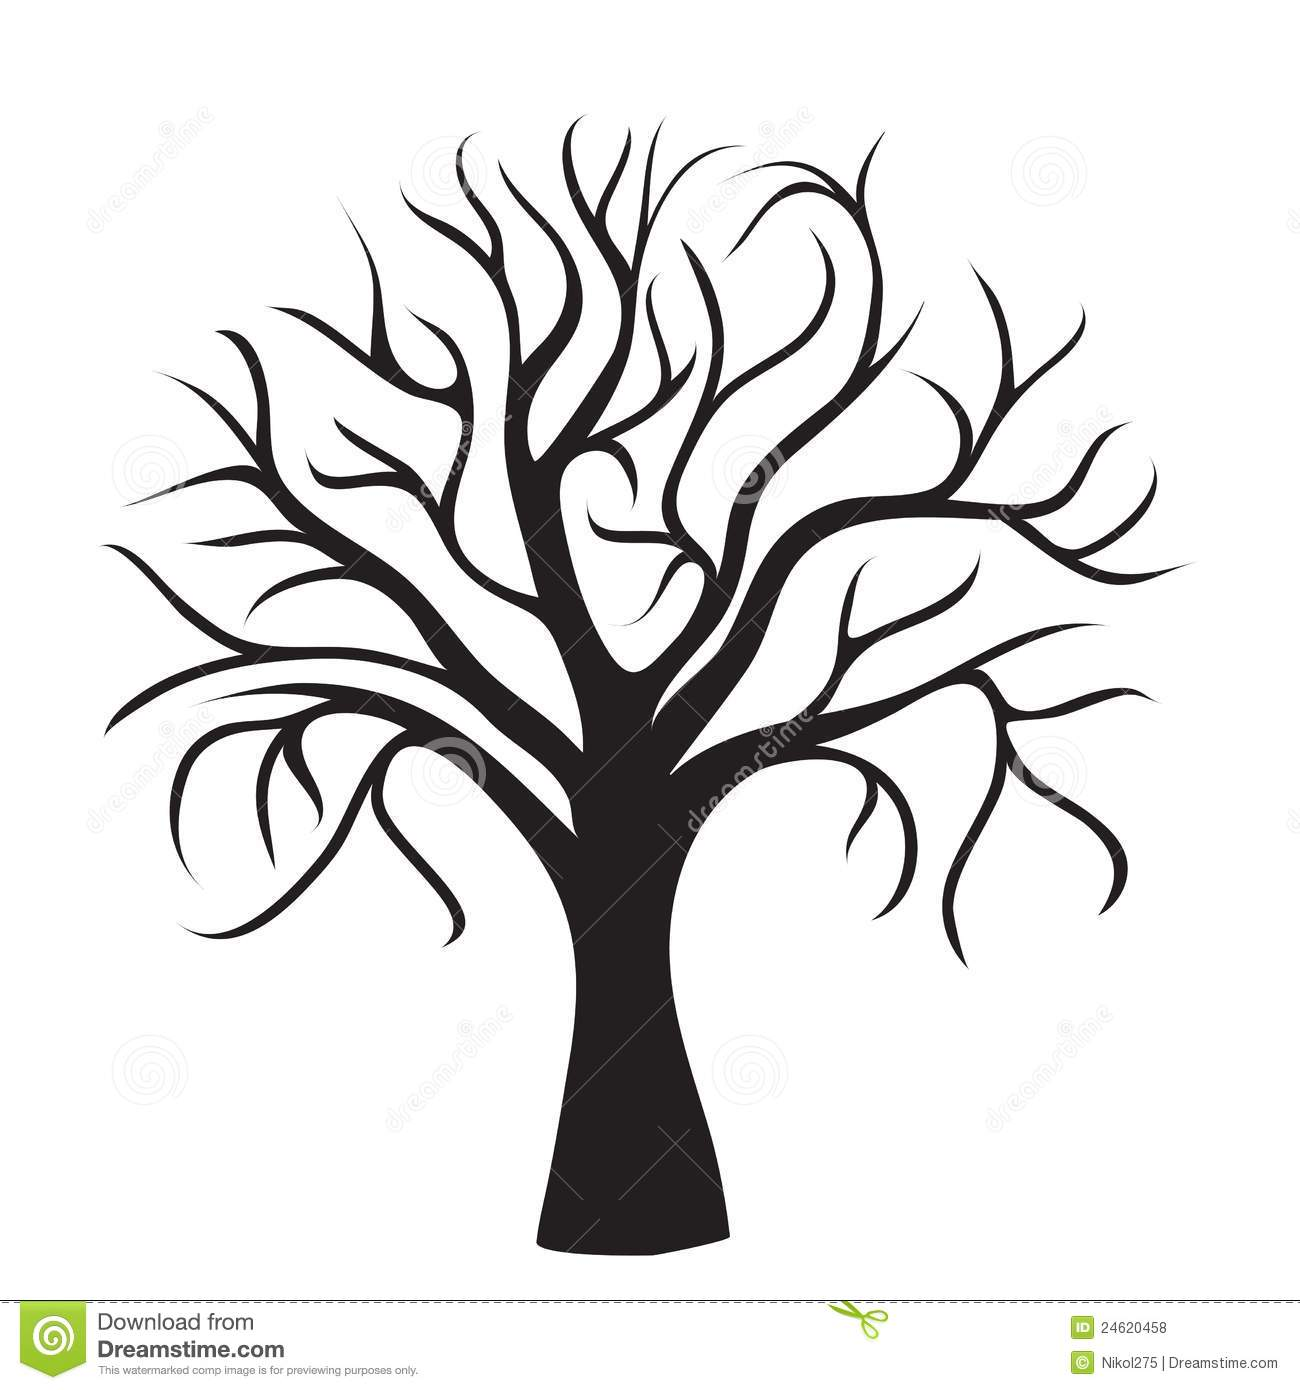 Clipart Tree Without Leaves Clipart Panda